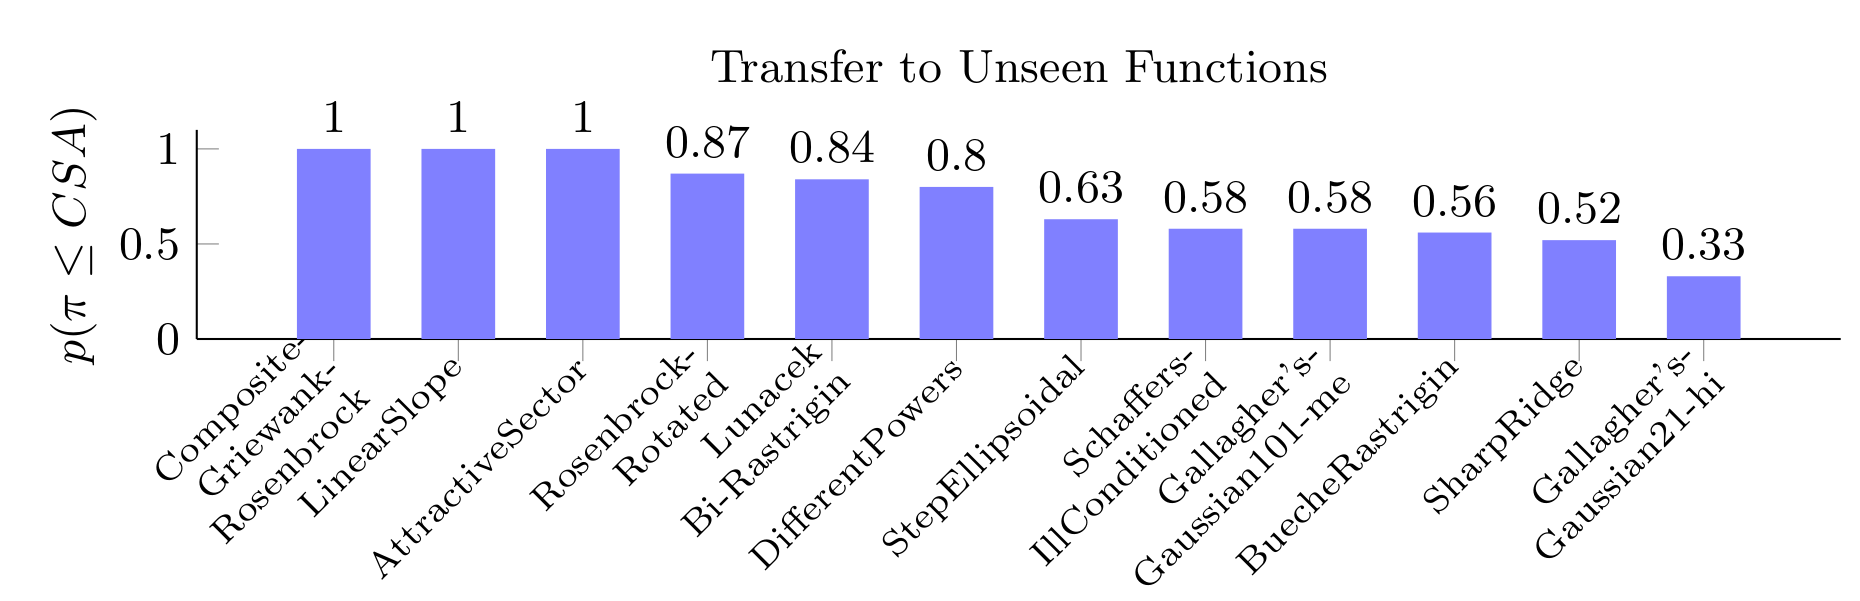 Transfer to Unseen Functions